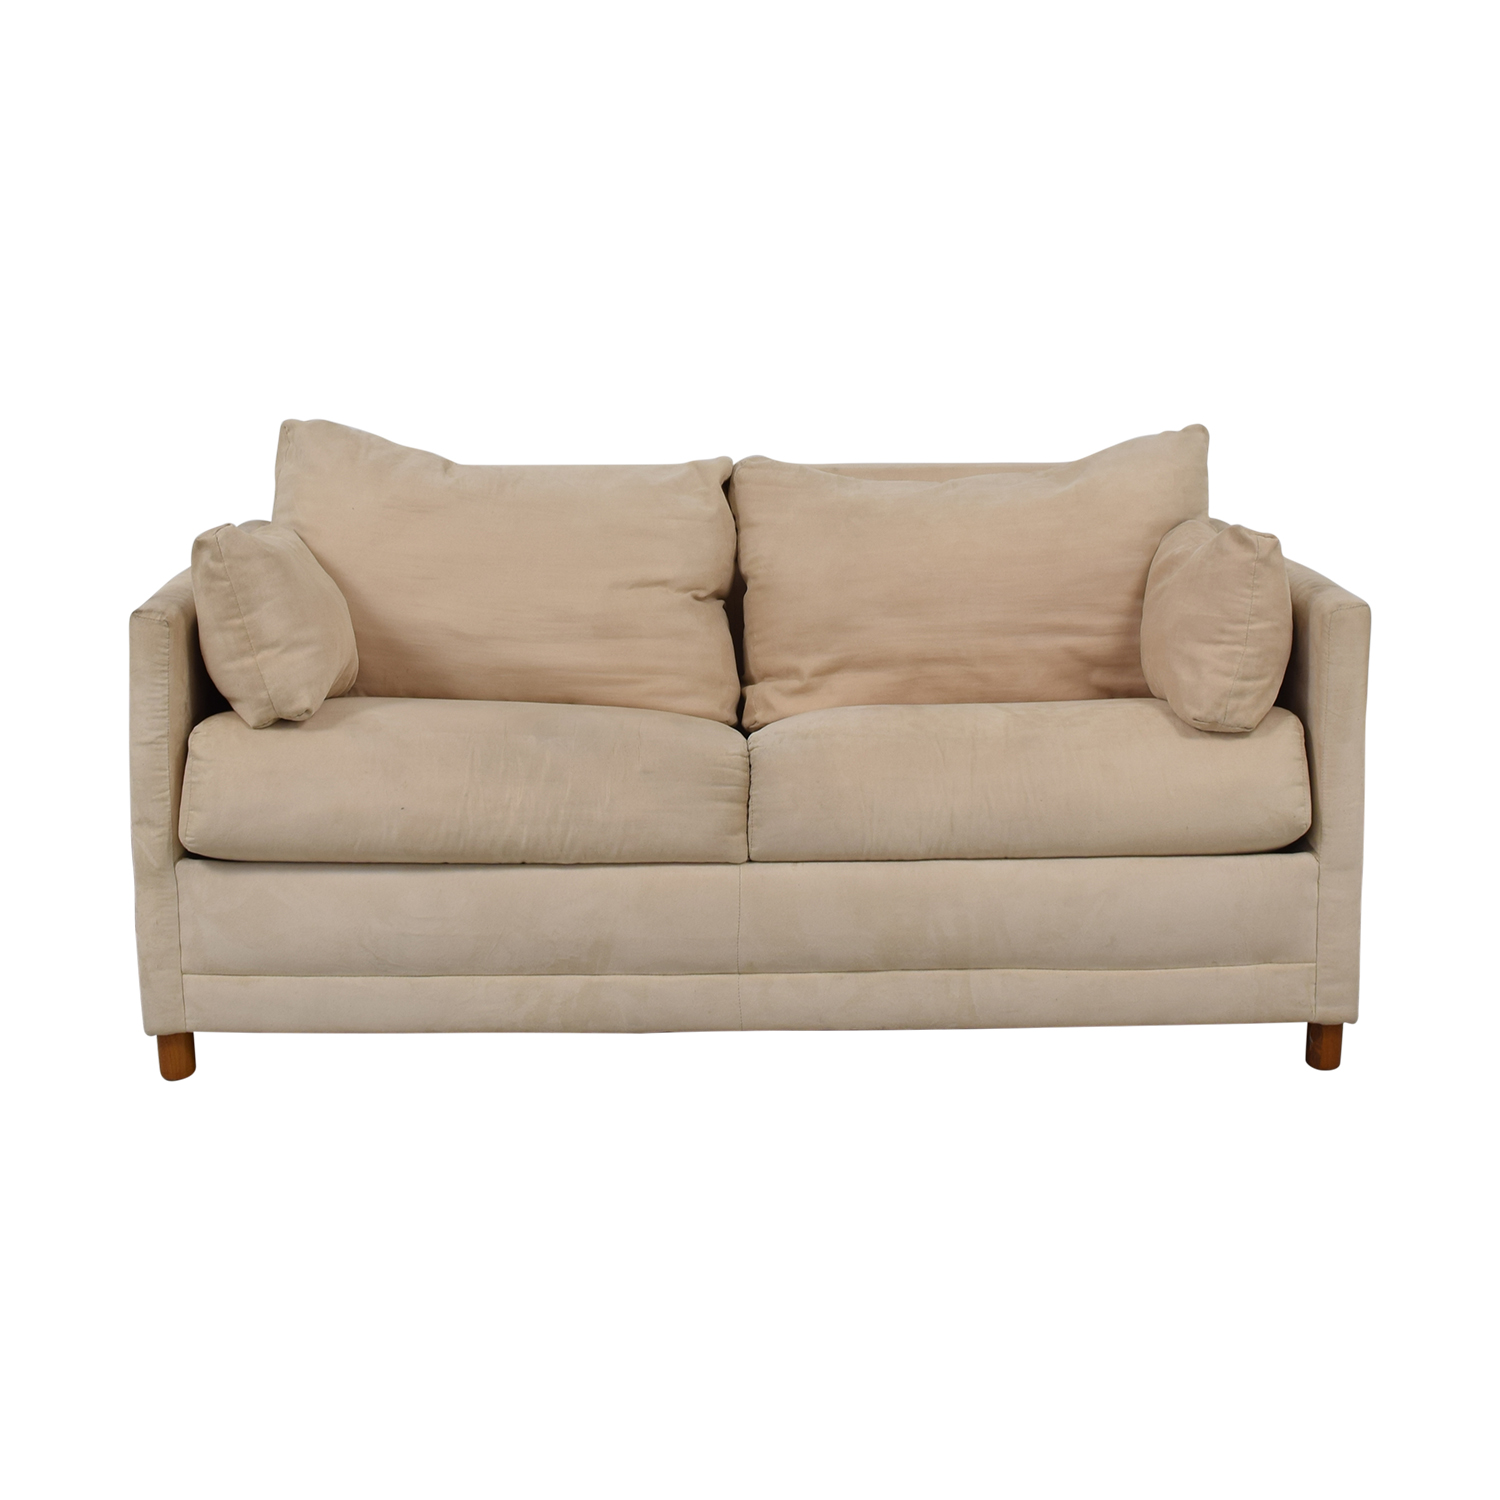 shop CB2 Beige Two-Cushion Convertible Sleeper Sofa CB2